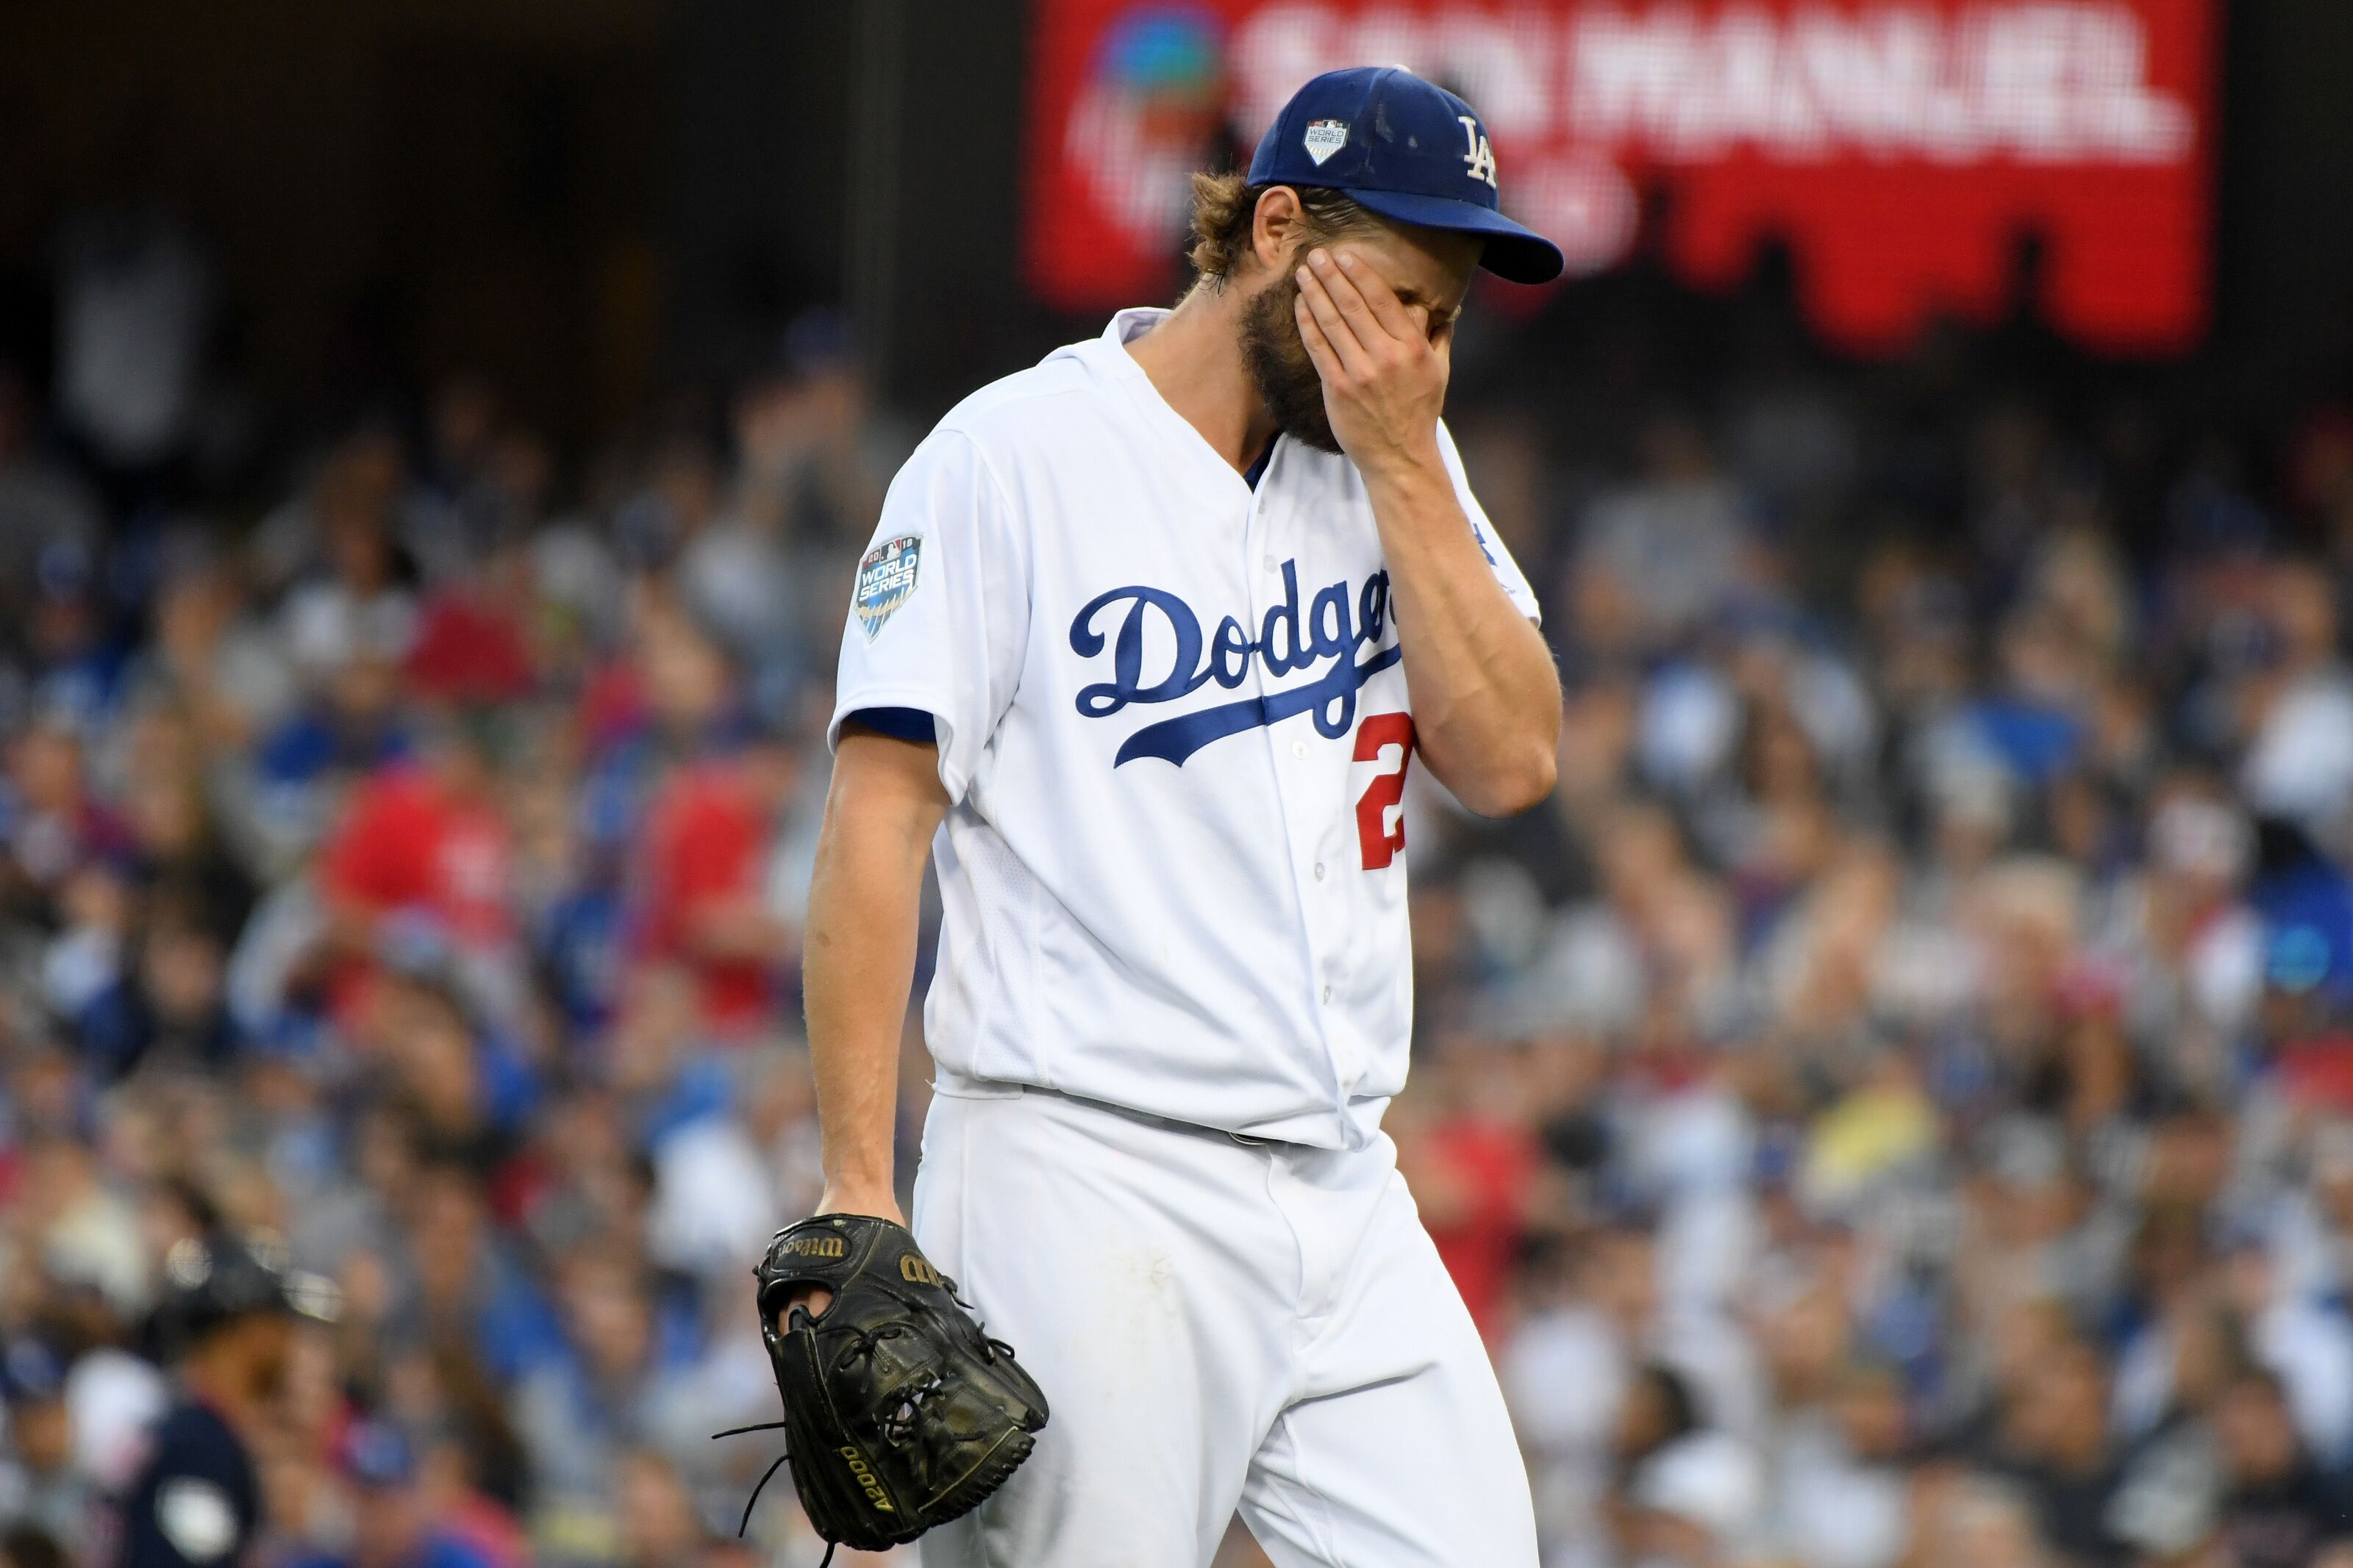 Los Angeles Dodgers: The case of Clayton Kershaw and the Postseason